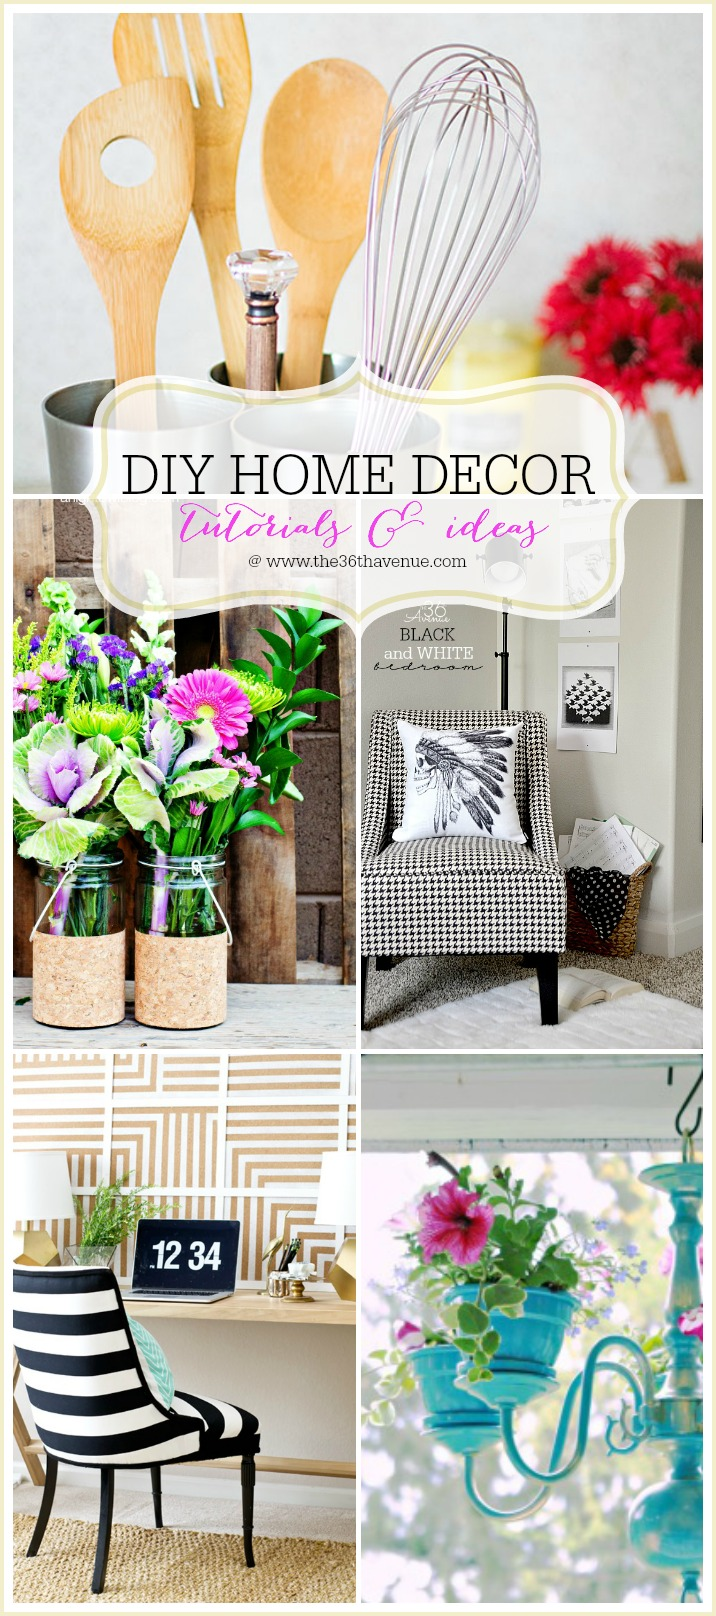 The 36th avenue home decor diy projects the 36th avenue for Home decor ideas at home